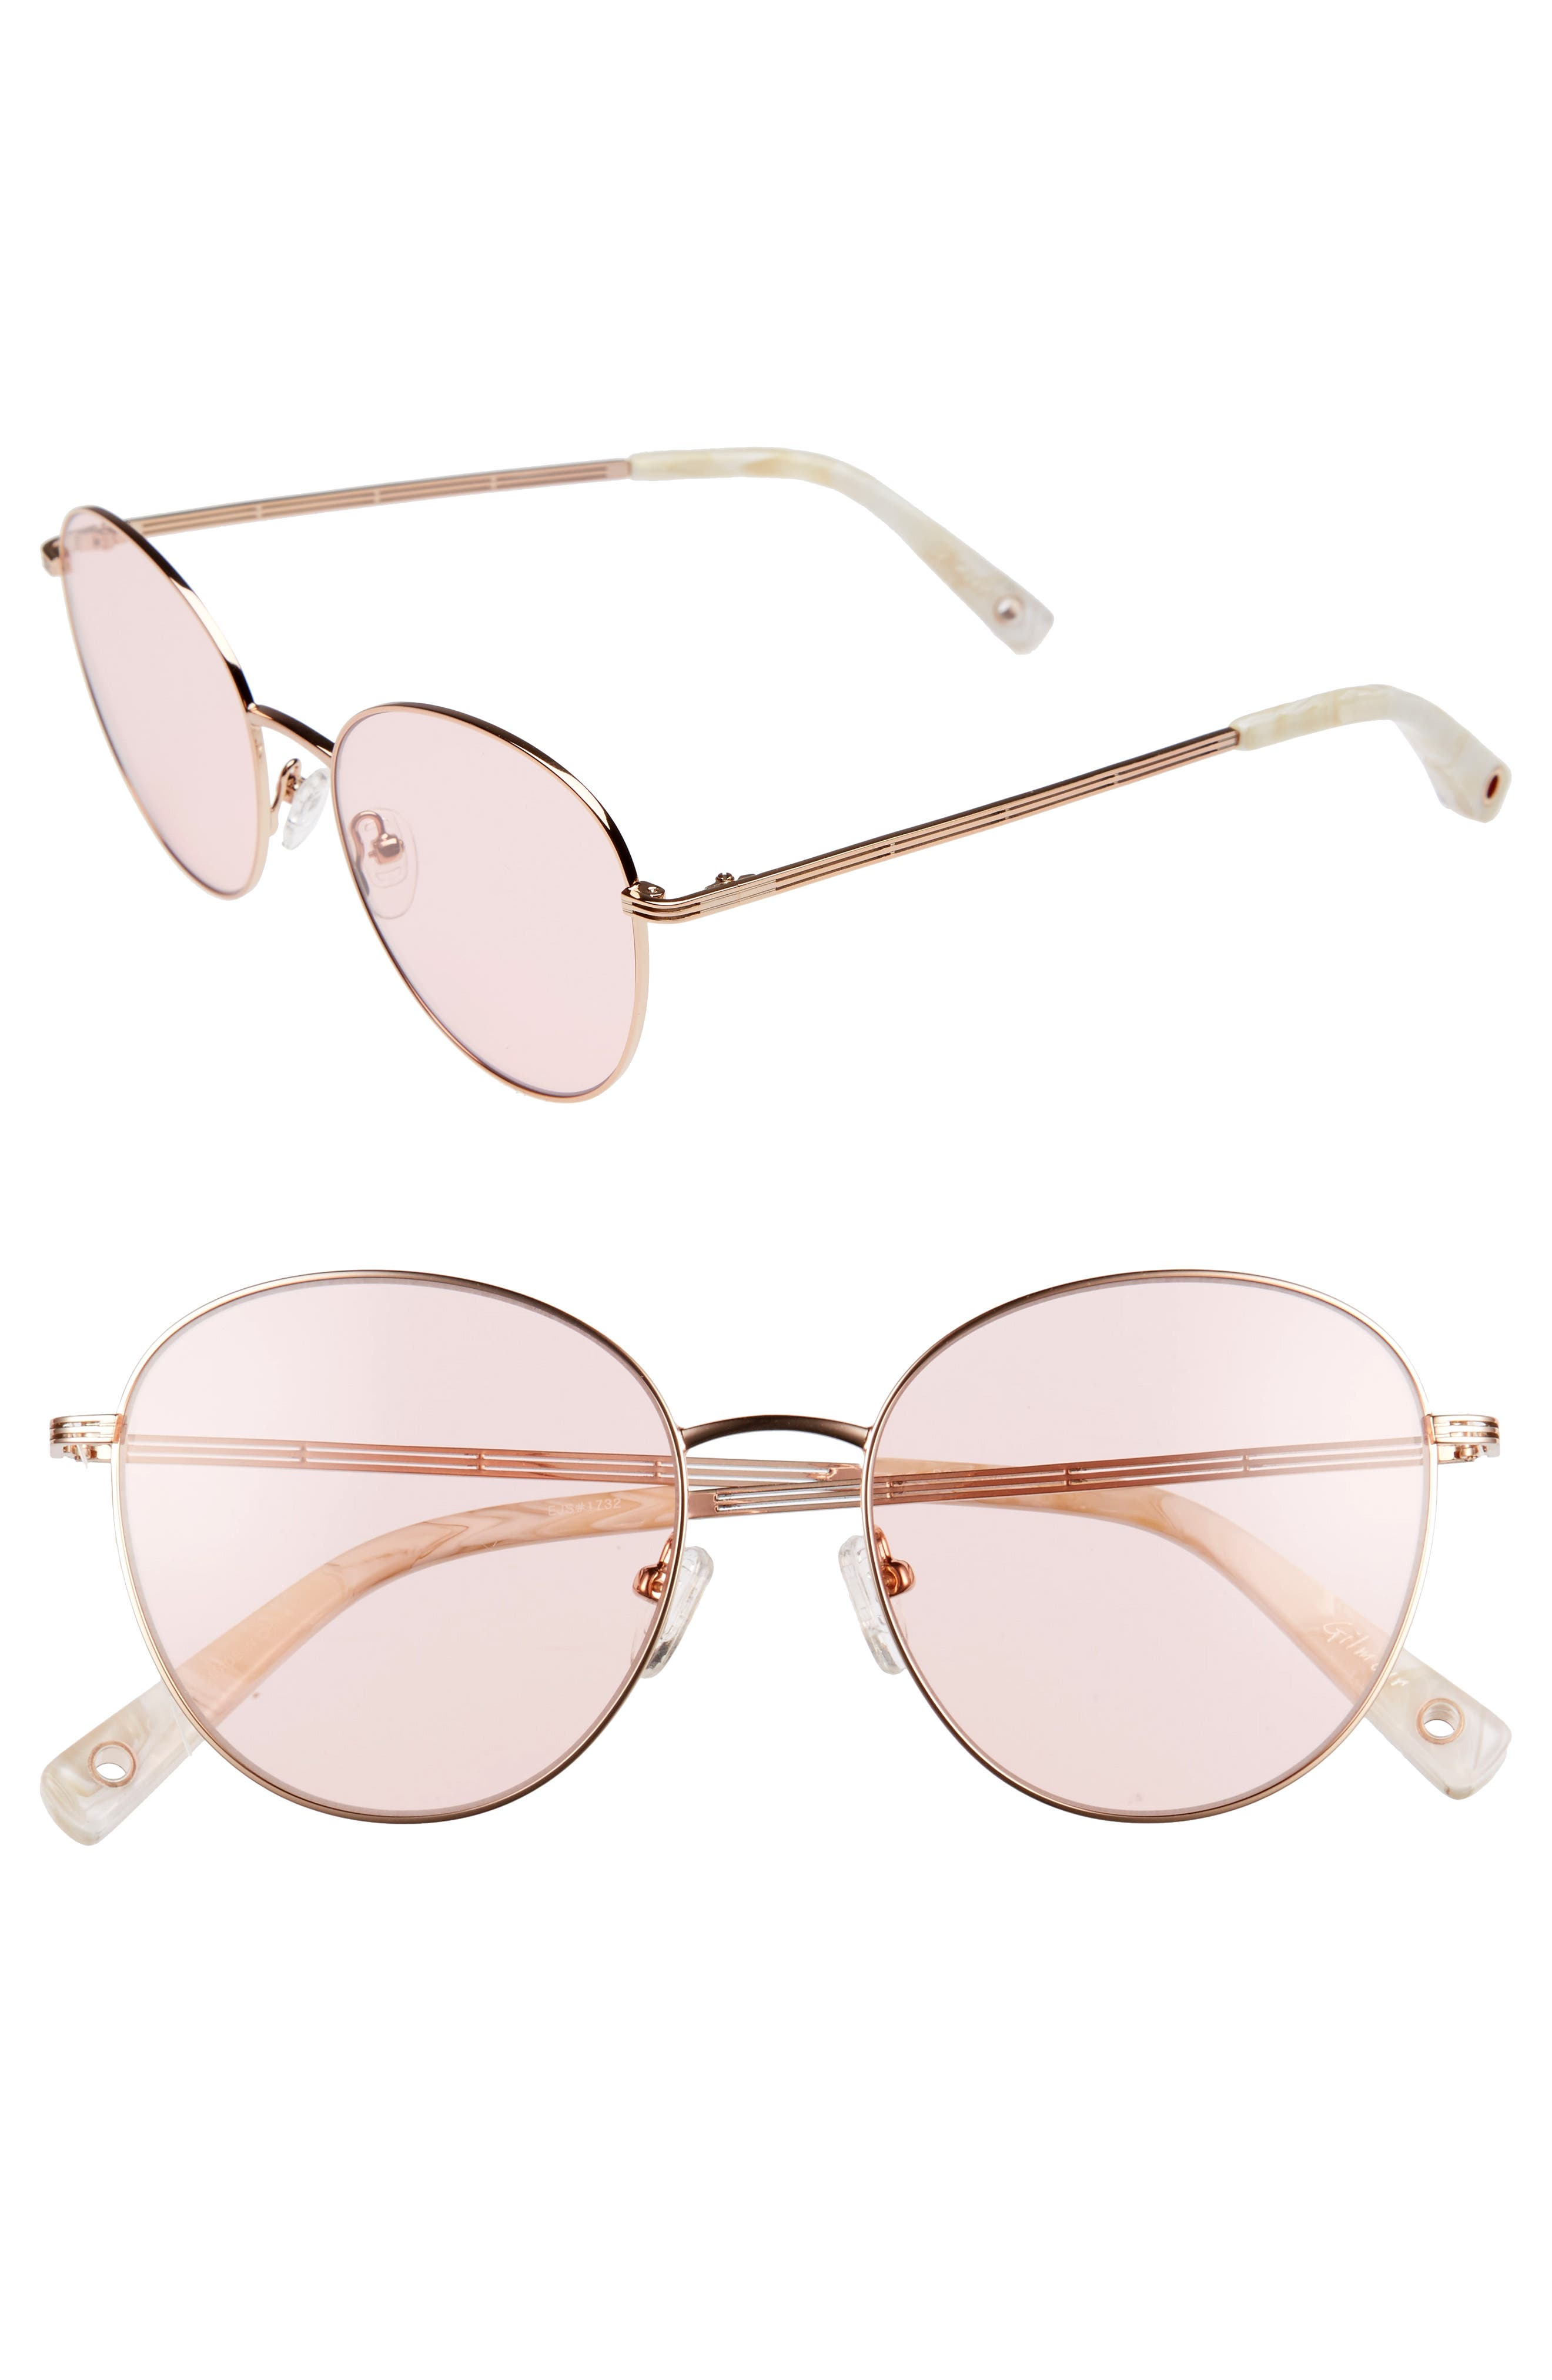 Gilmour 53mm Round Sunglasses & Beaded Chain,                         Main,                         color, Rose Gold/ Pink